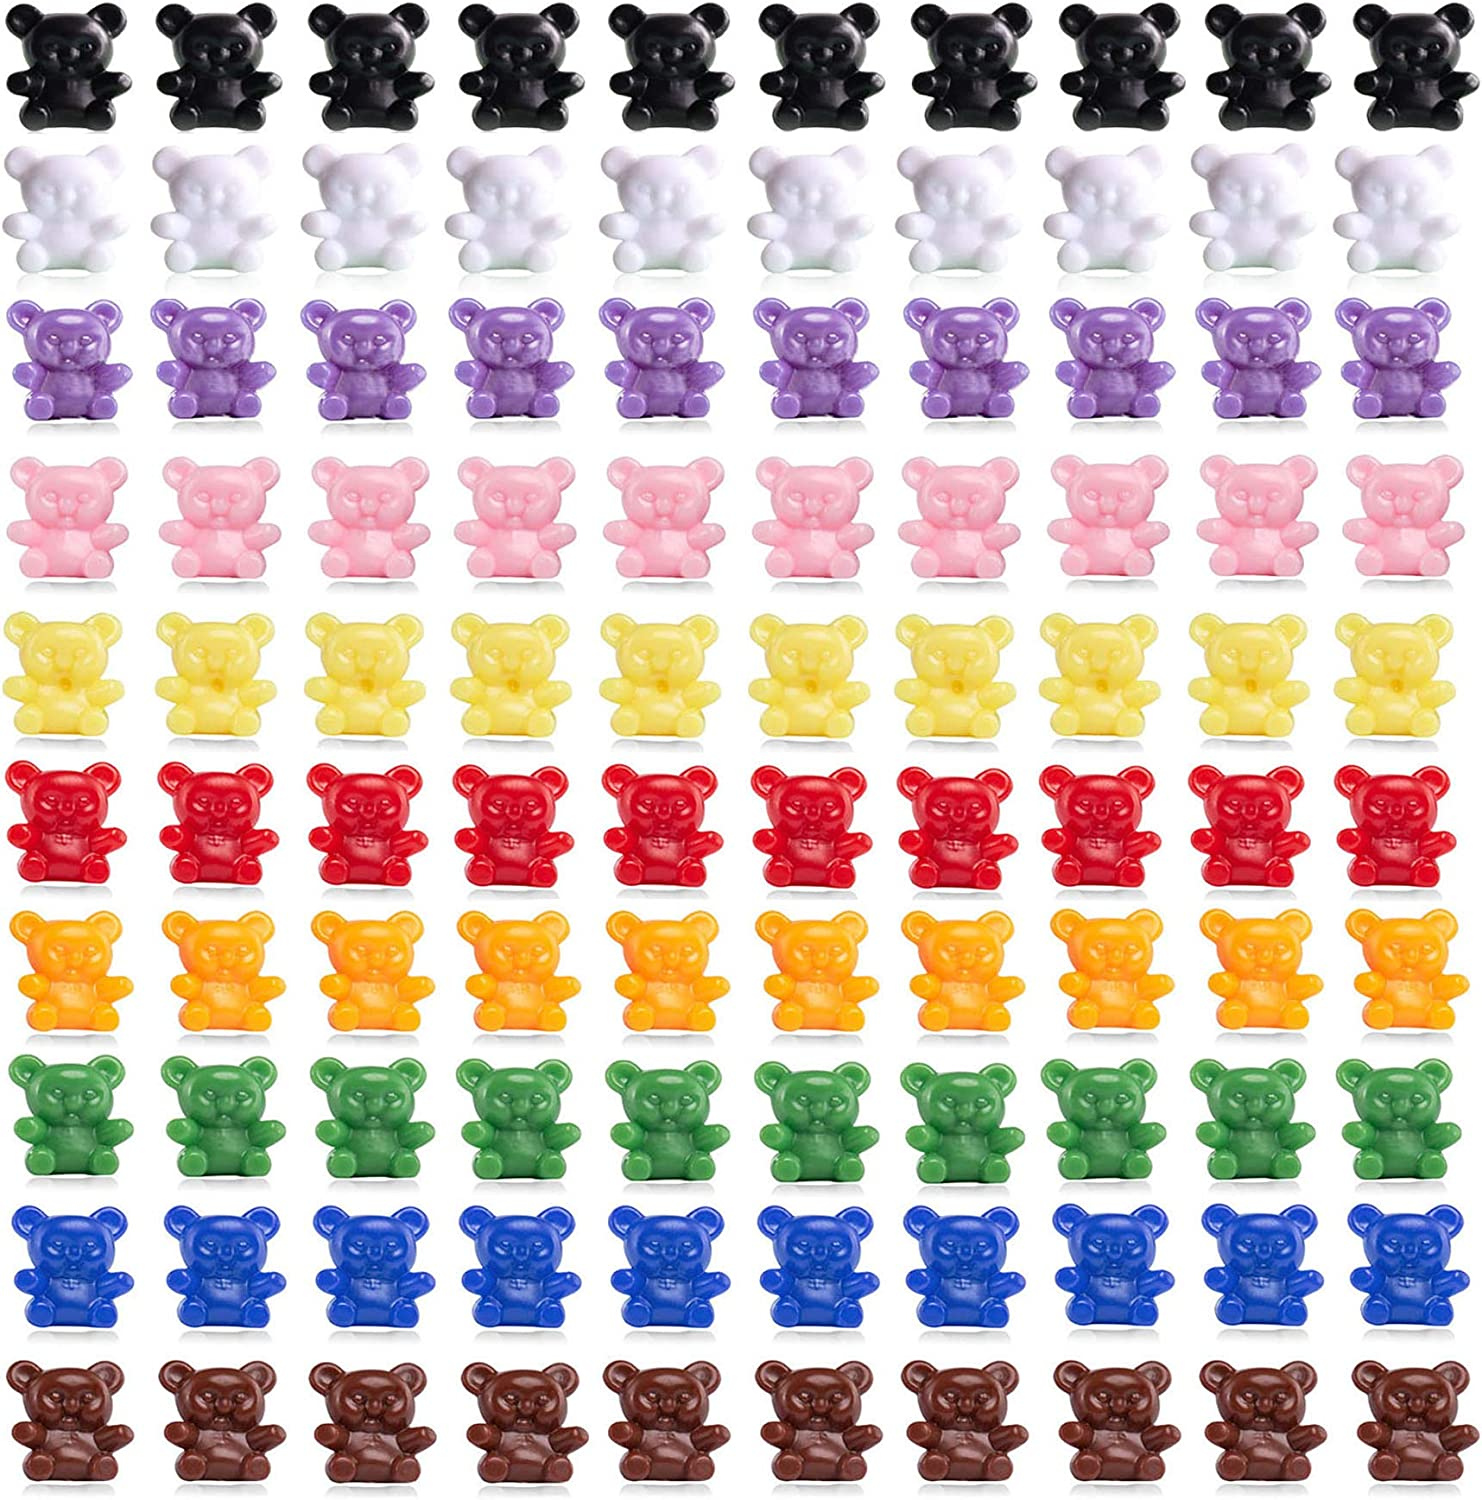 Counting Sorting Bears Toddler Game for Preschool Activities Learning Number Color Recognition Educational Toys Fine Motor Tool for Children and Kids (180 Pcs)